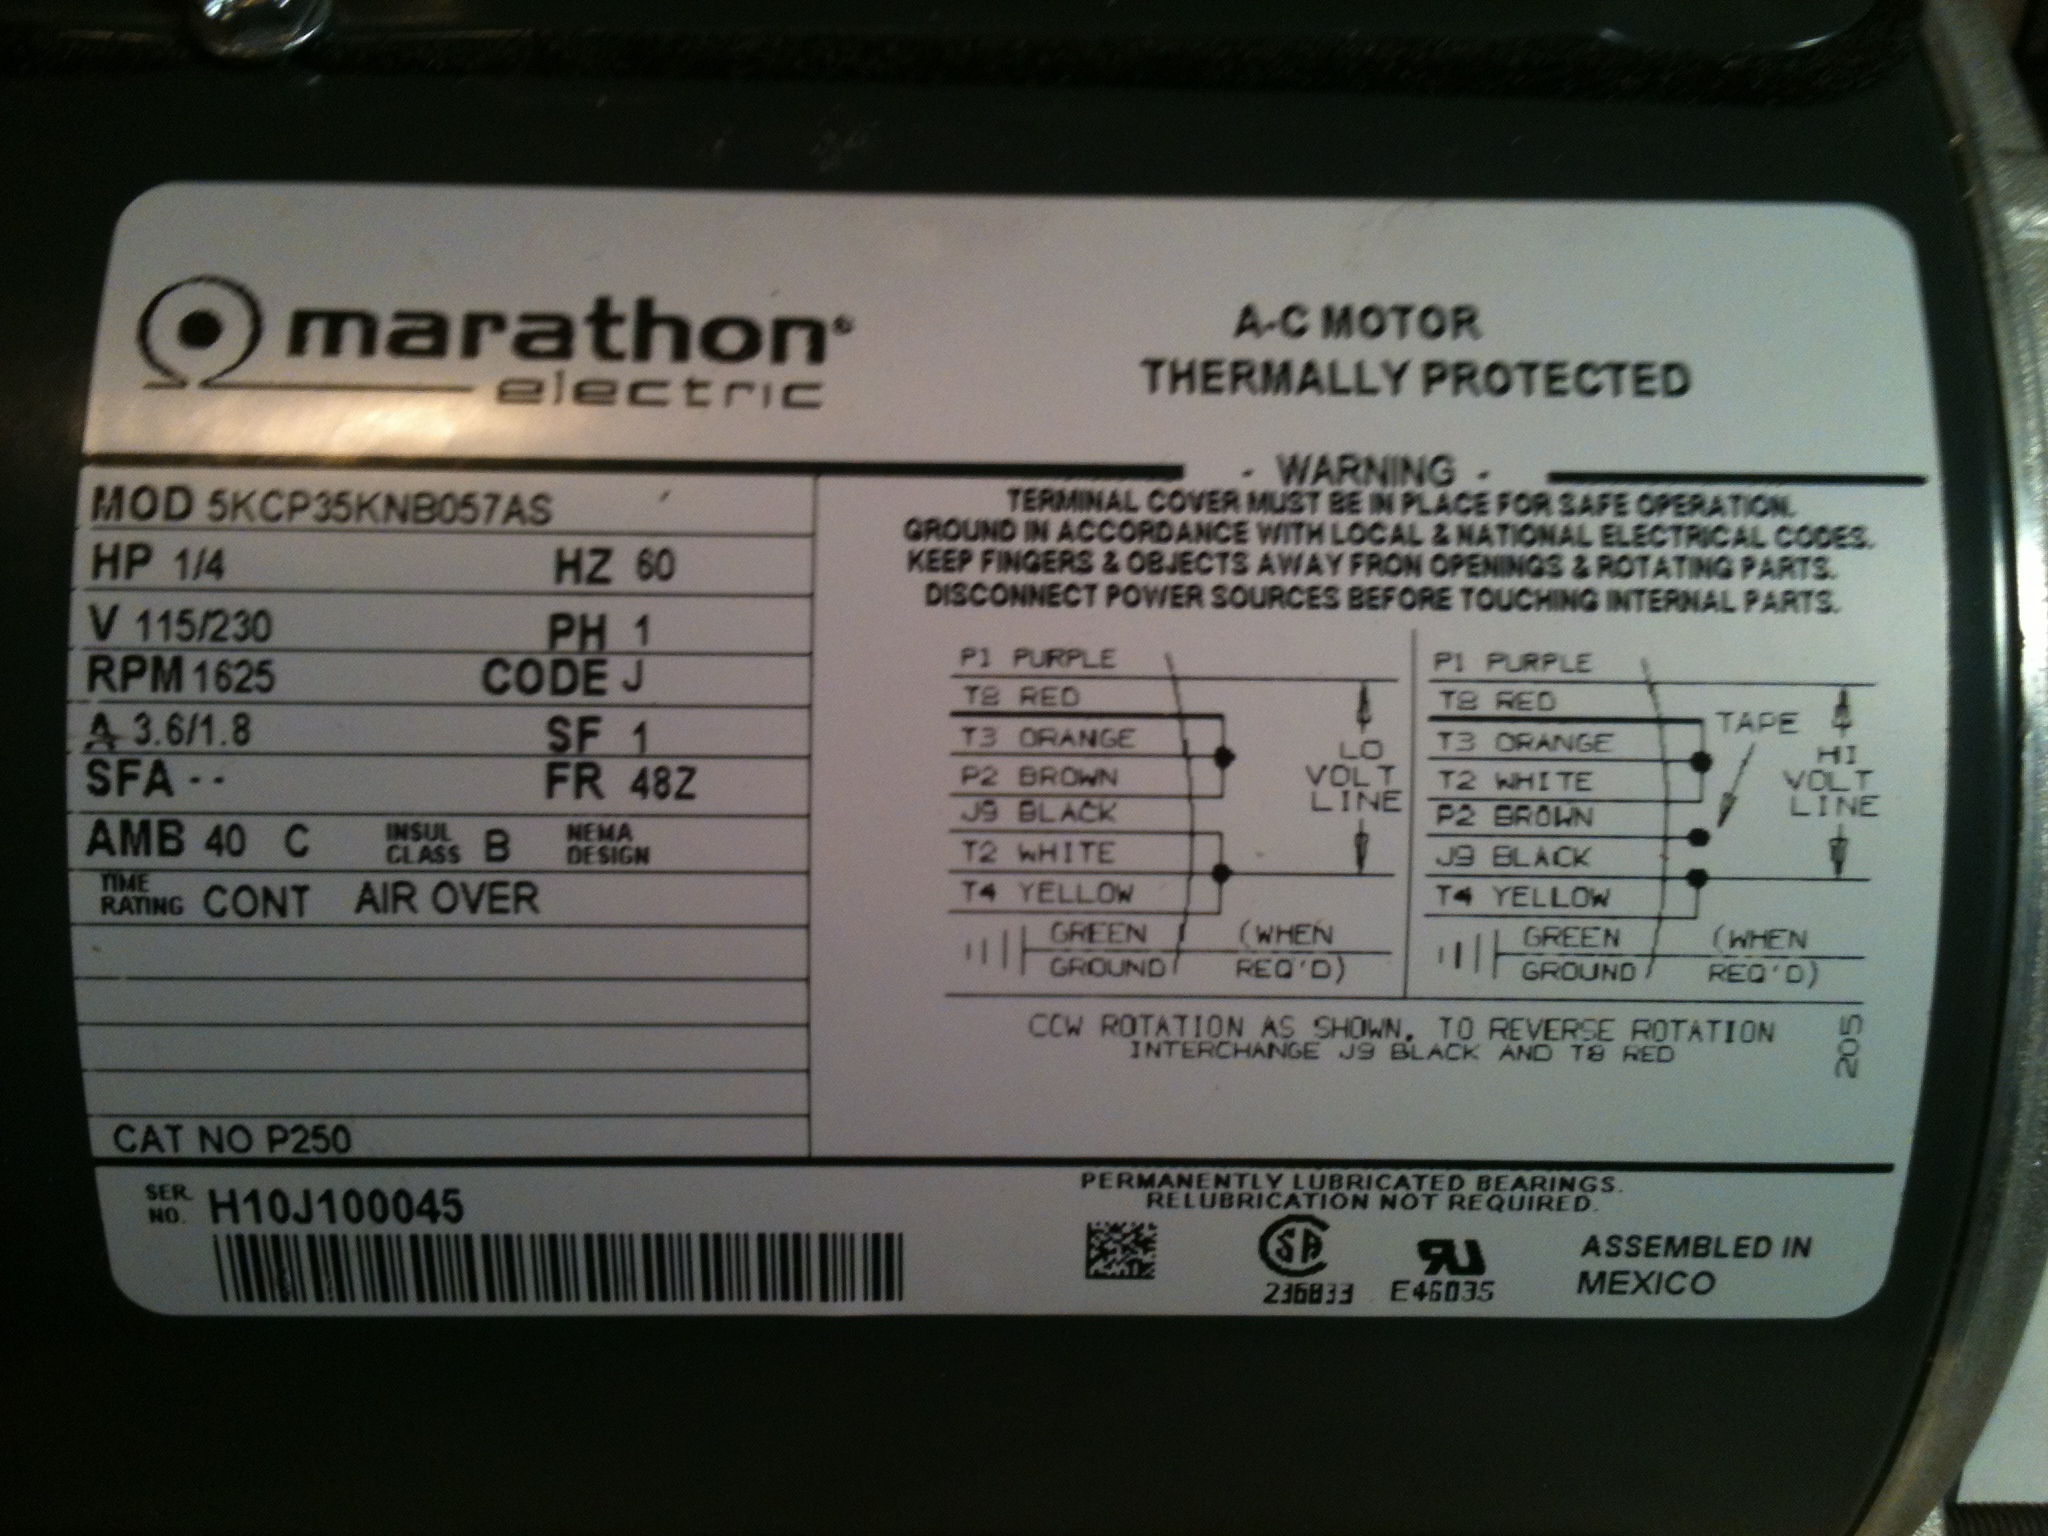 2012 01 24_021217_marathonmotor i just bought a marathon electric ac motor, hp 1 4 v 115 230 marathon electric motor wiring diagram problems at n-0.co